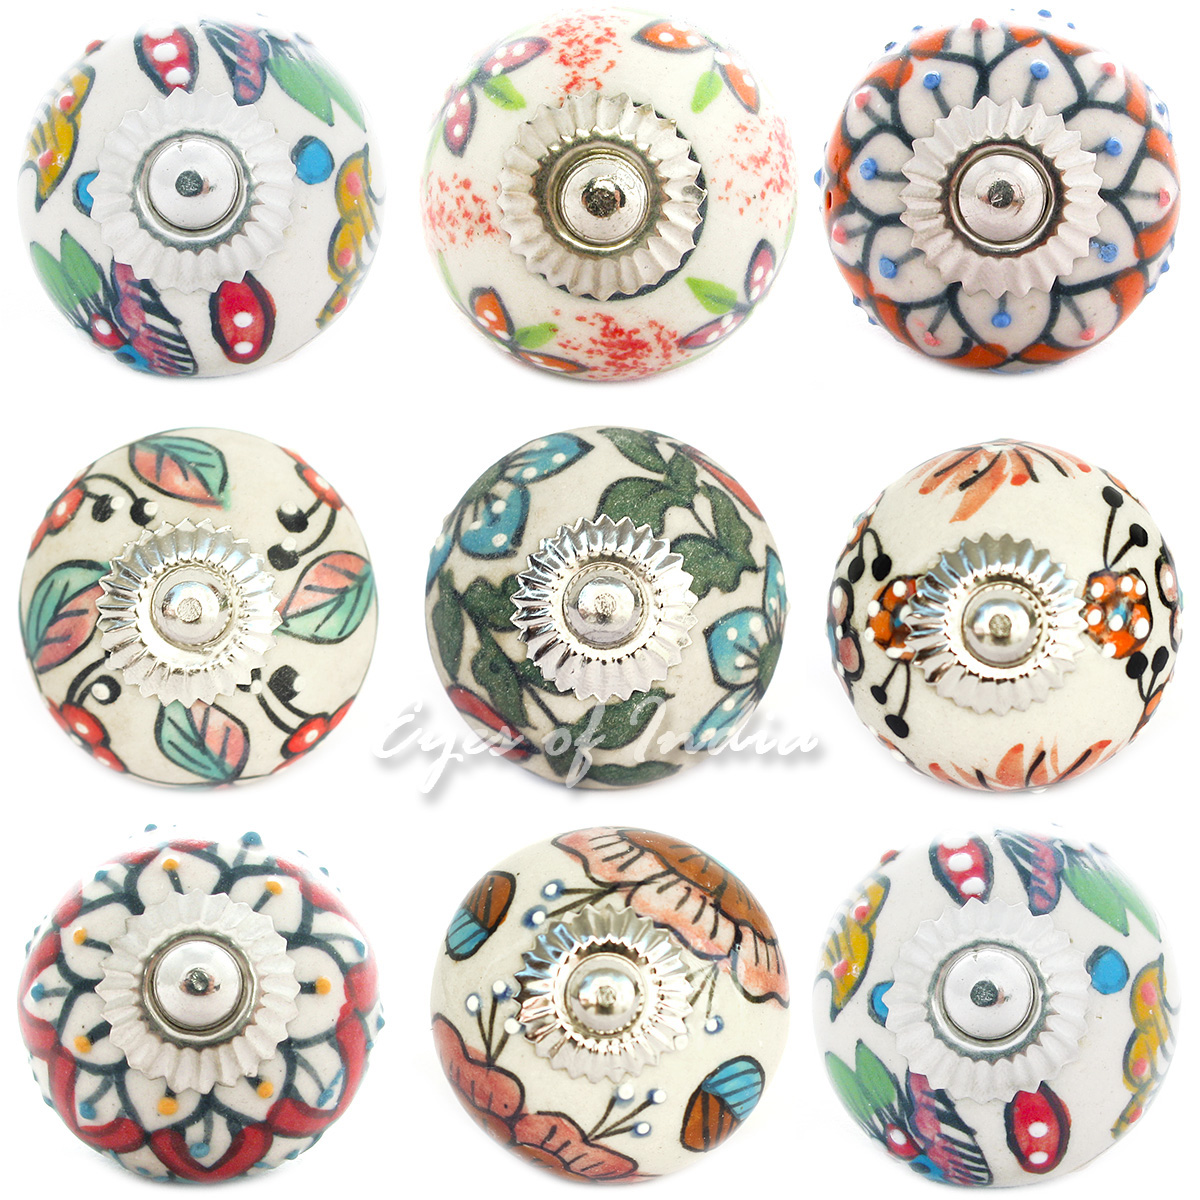 Genial Ceramic Cabinet Dresser Door Cupboard Decorative Shabby Chic Knobs Pulls